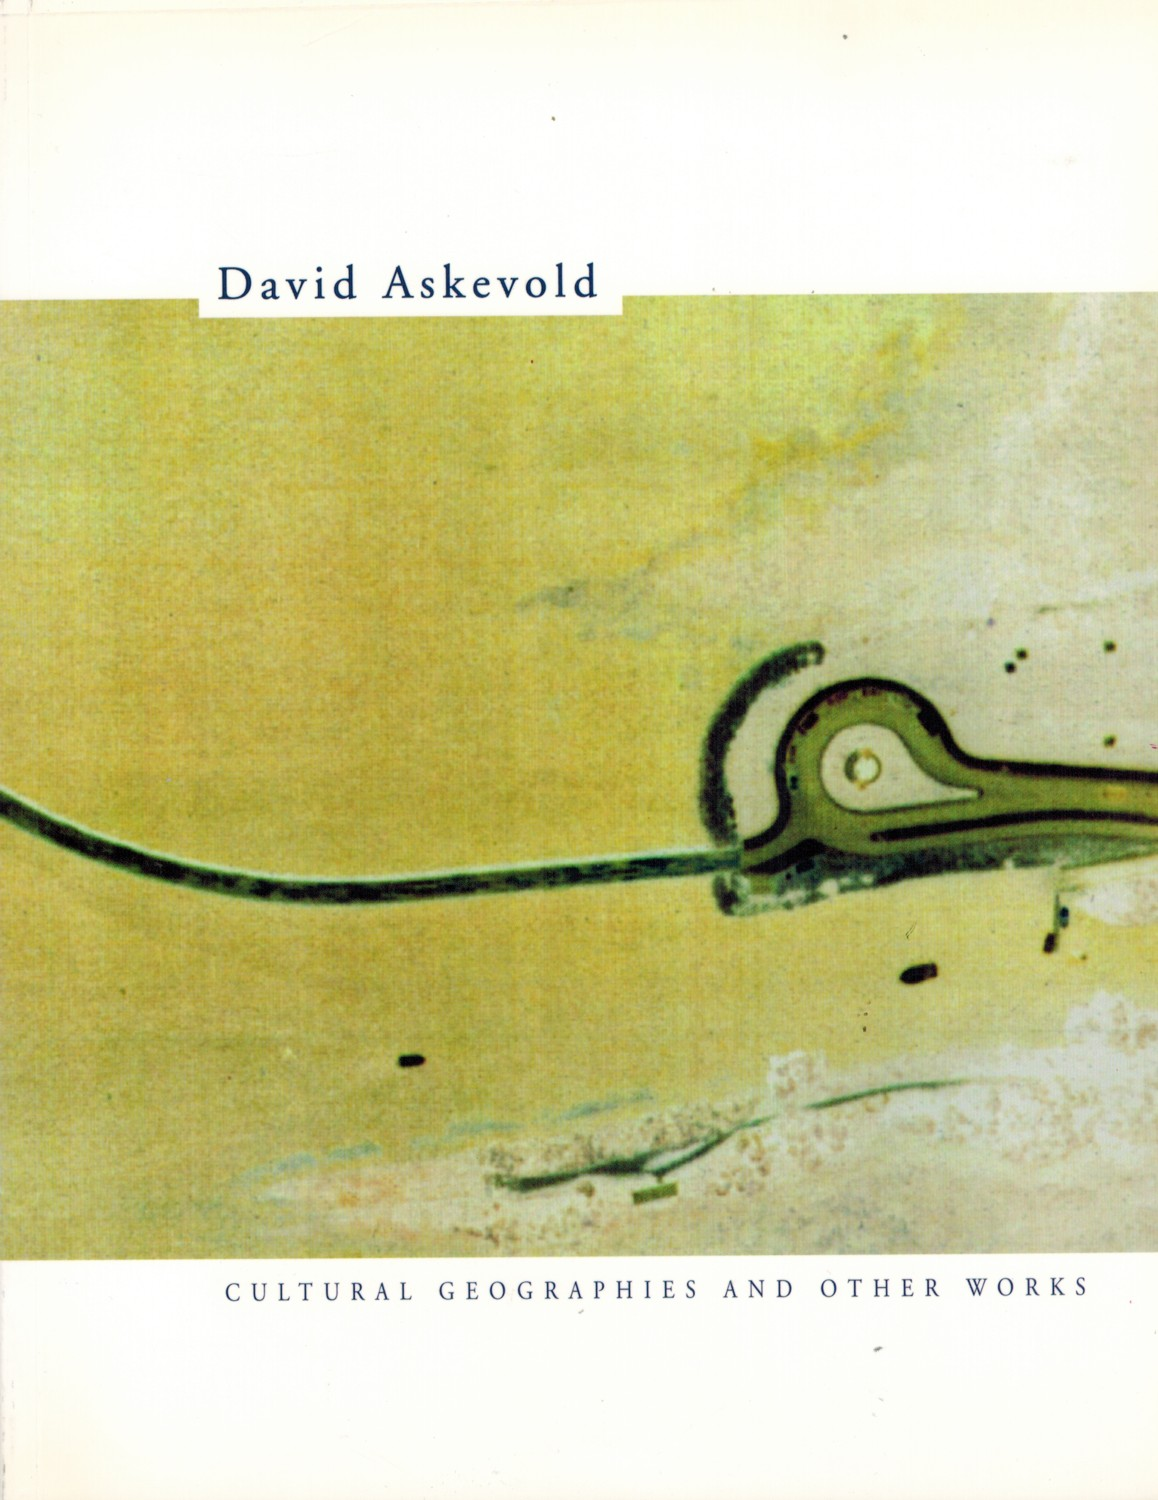 (ASKEVOLD, DAVID). ASKEVOLD, DAVID, MIKE KELLEY, CLIFF EYLAND, TERRY GRAFF & PETRA RIGBY WATSON - DAVID ASKEVOLD: CULTURAL GEOGRAPHIES AND SELECTED WORKS - SIGNED PRESENTATION COPY FROM THE ARTIST